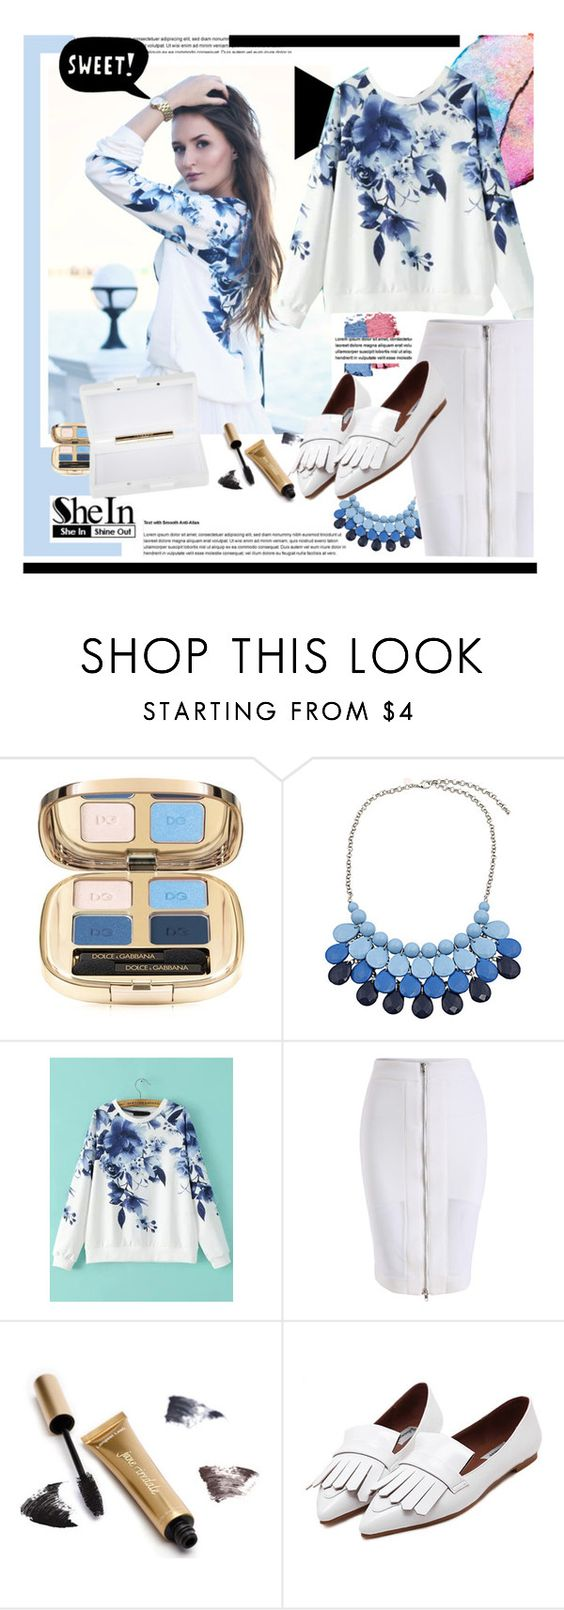 """""""Style with Sheinshide.com"""" by hamaly ❤ liked on Polyvore featuring Dolce&Gabbana, Chicnova Fashion, Jane Iredale, ESPRIT and Urania Gazelli"""